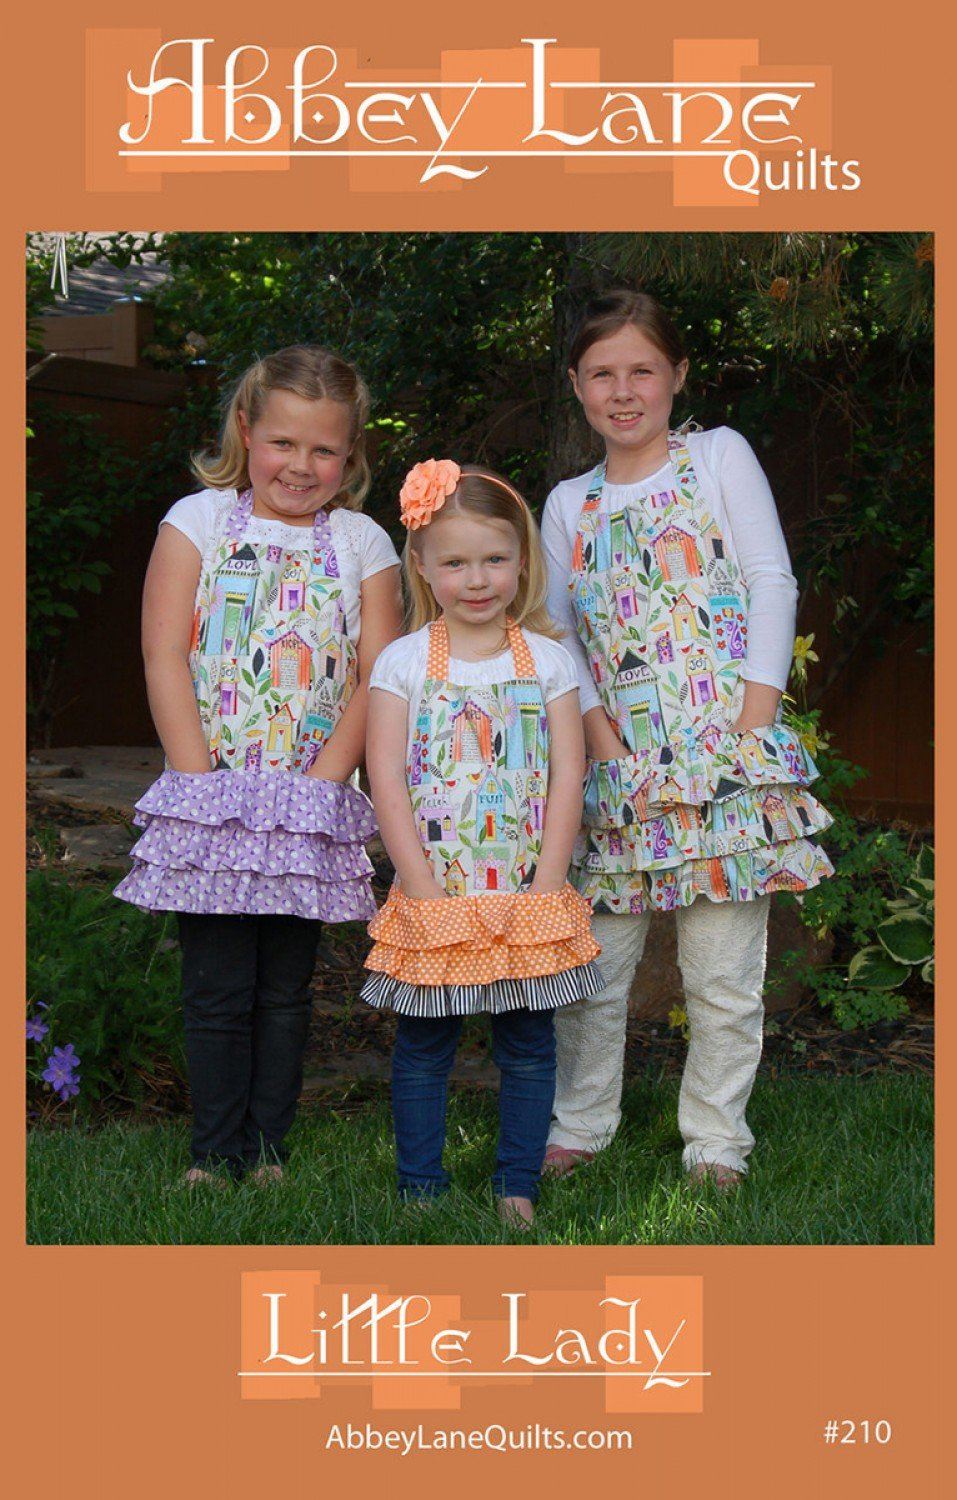 Little Lady - Children's Apron in 3 Sizes!